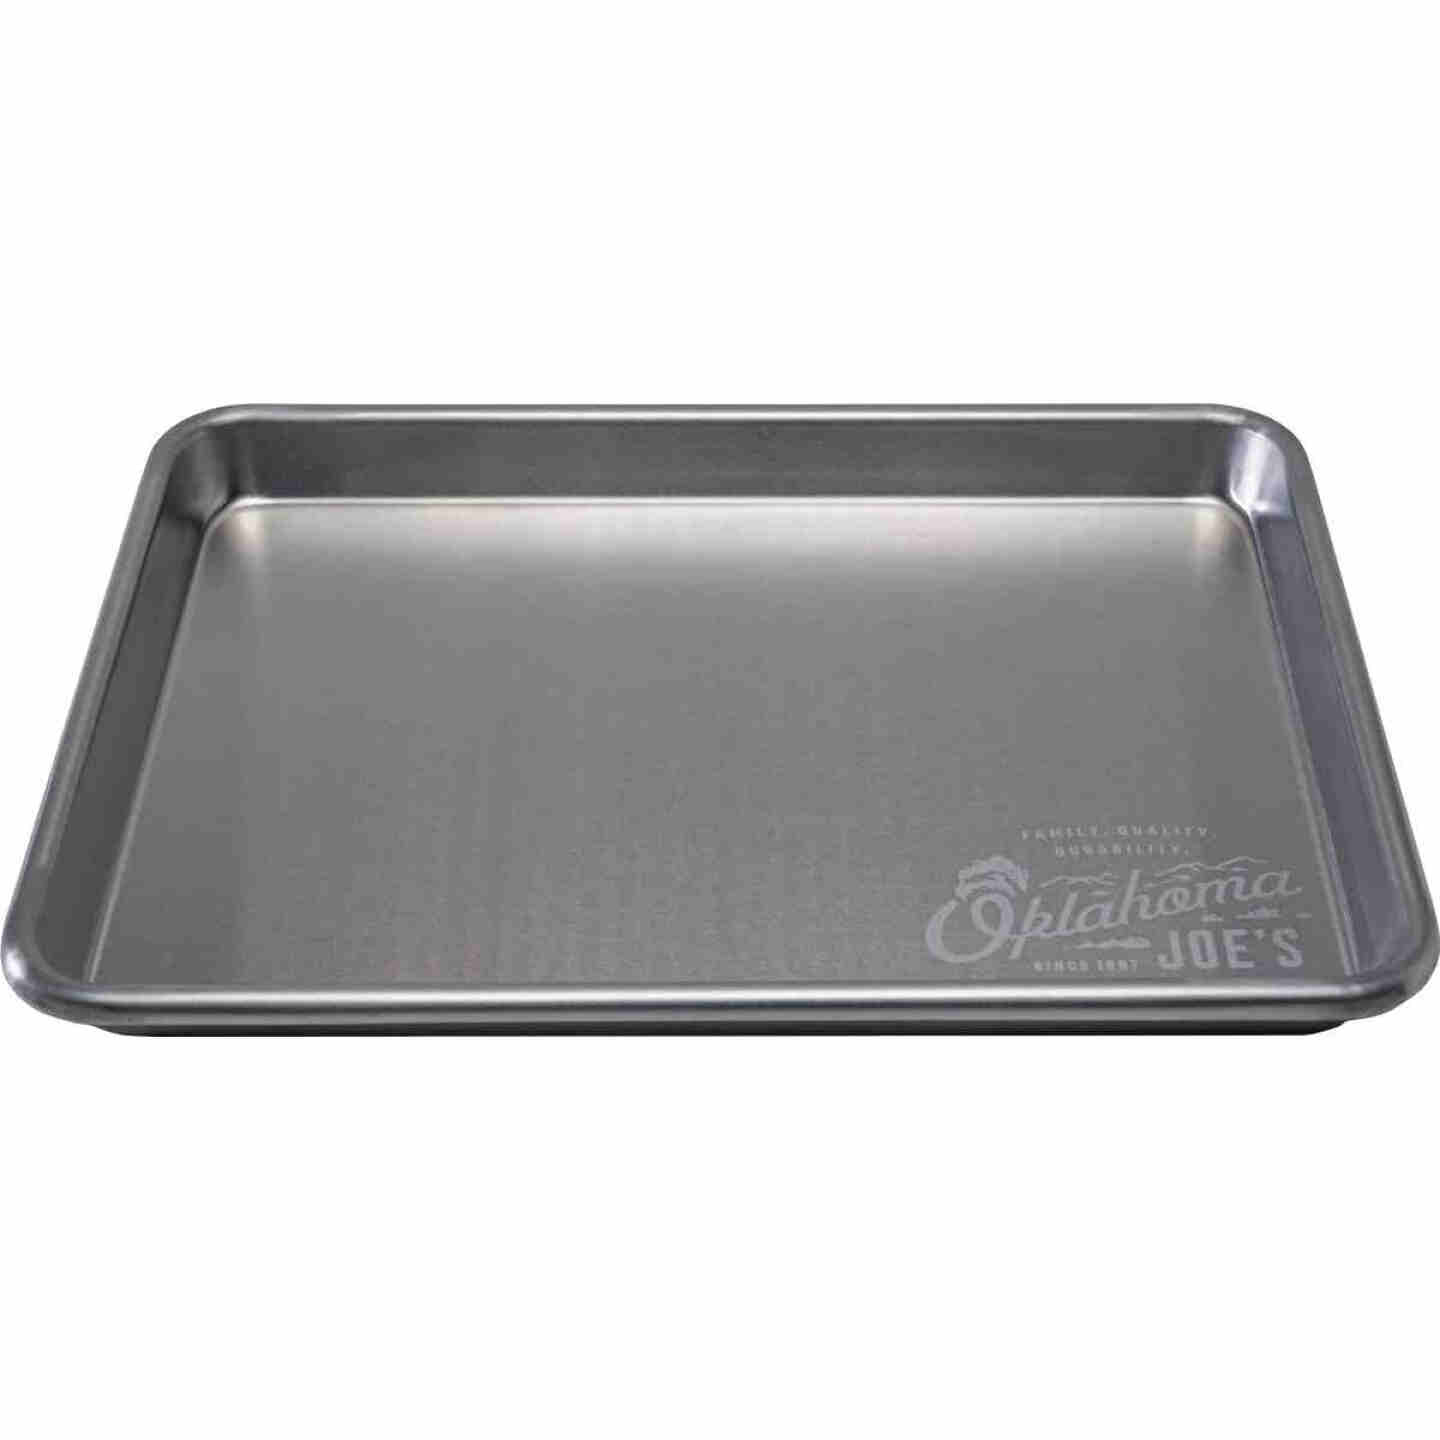 Oklahoma Joe's 13 In. W. x 9 In. L. Aluminum Serving Tray Image 3